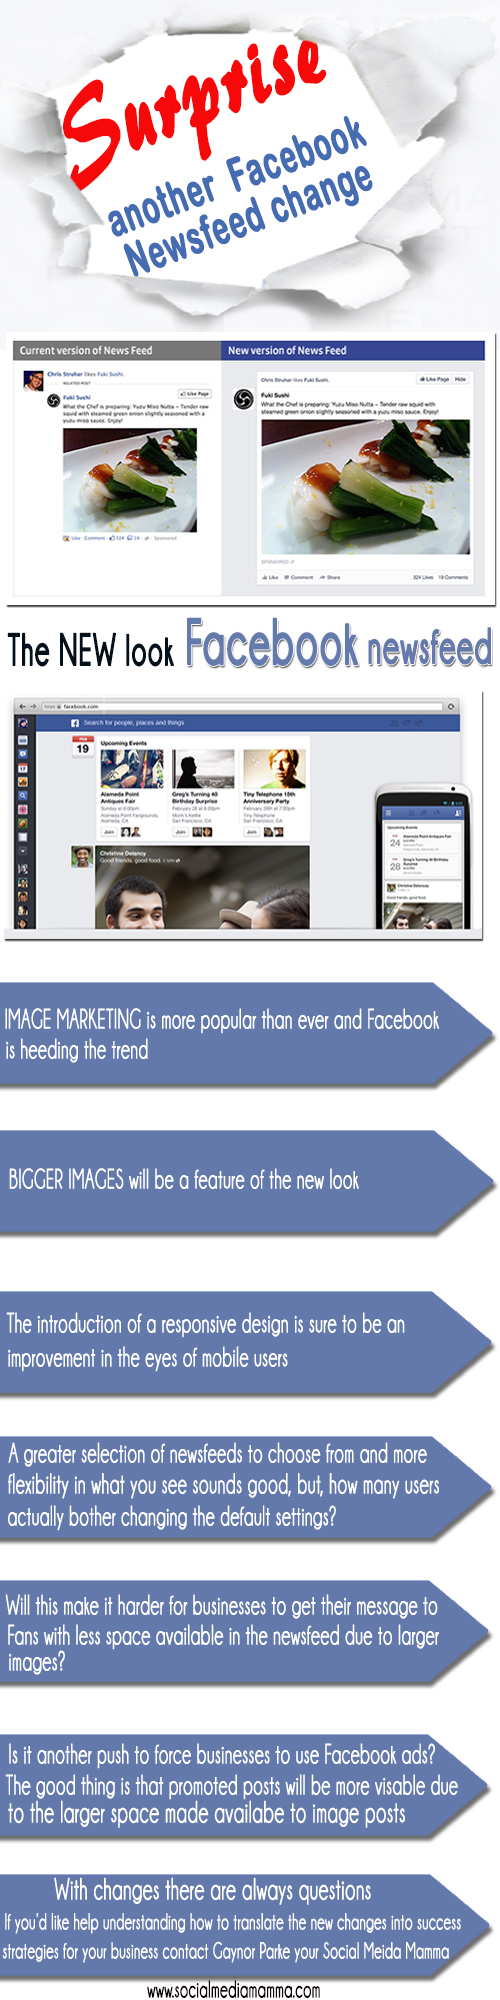 New Facebook Newsfeed feature March 2013 Social Meida Marketing ...